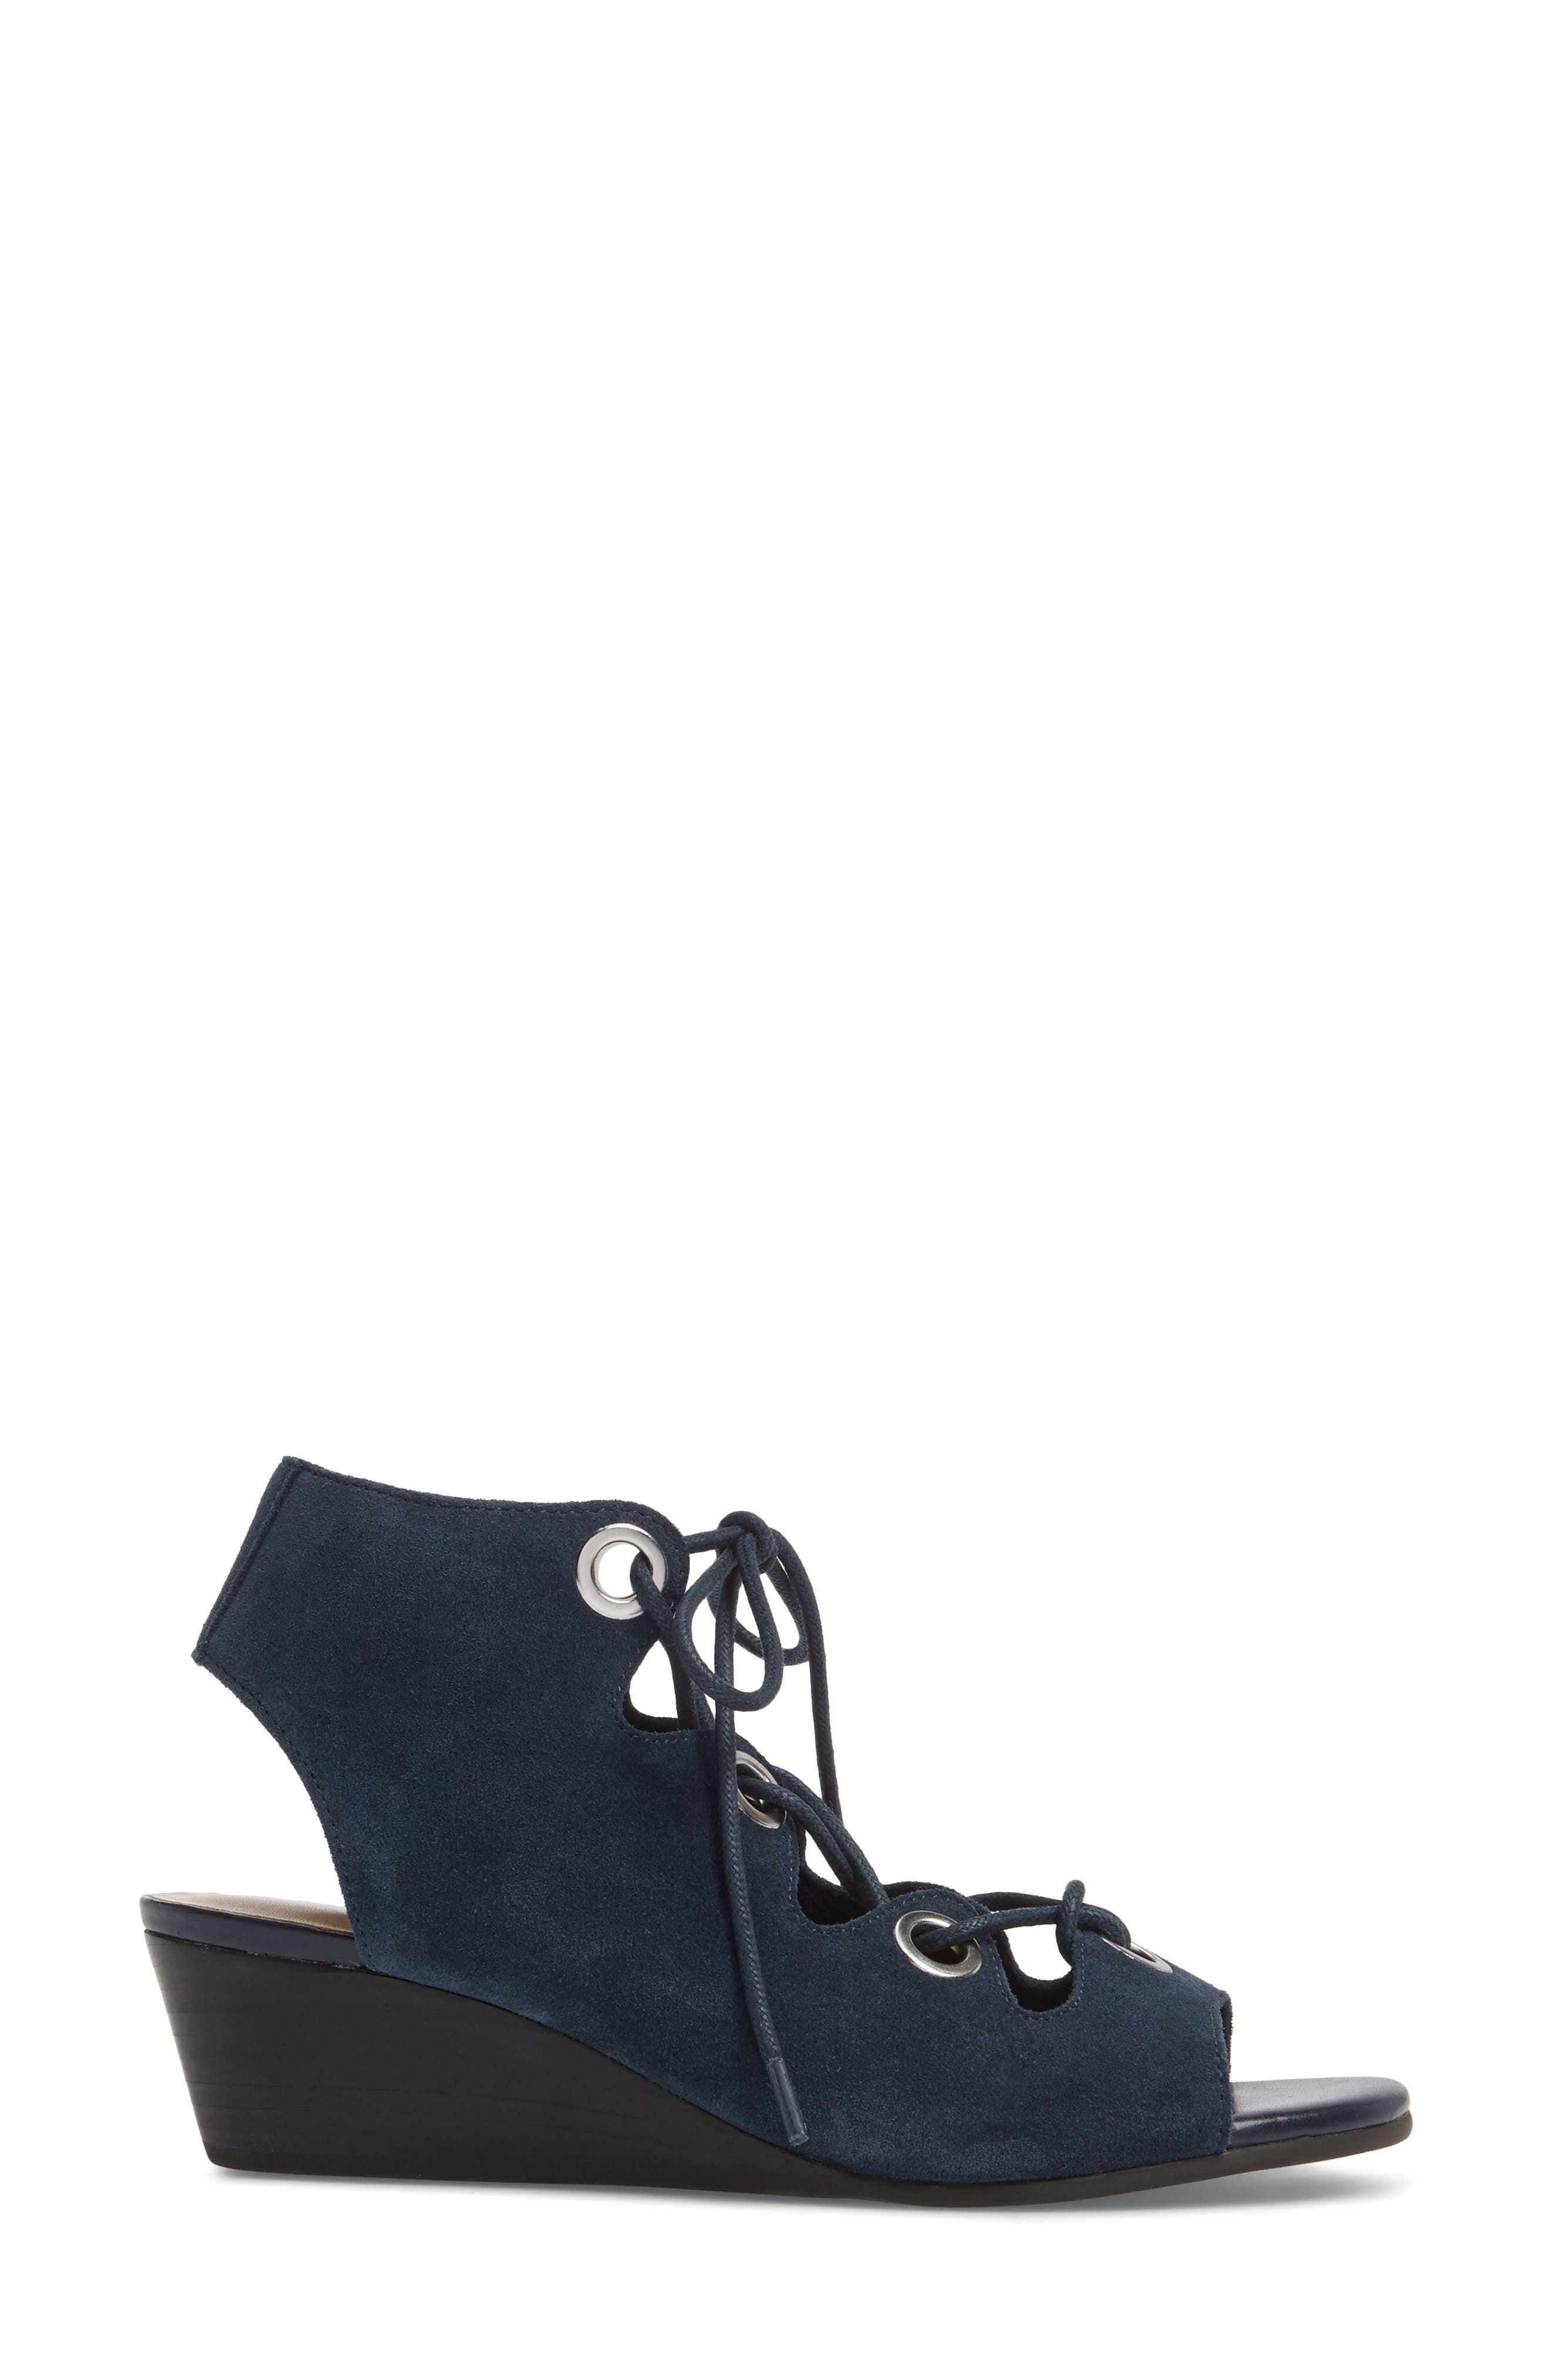 Ingrid Lace-Up Sandal,                             Alternate thumbnail 3, color,                             Navy Suede